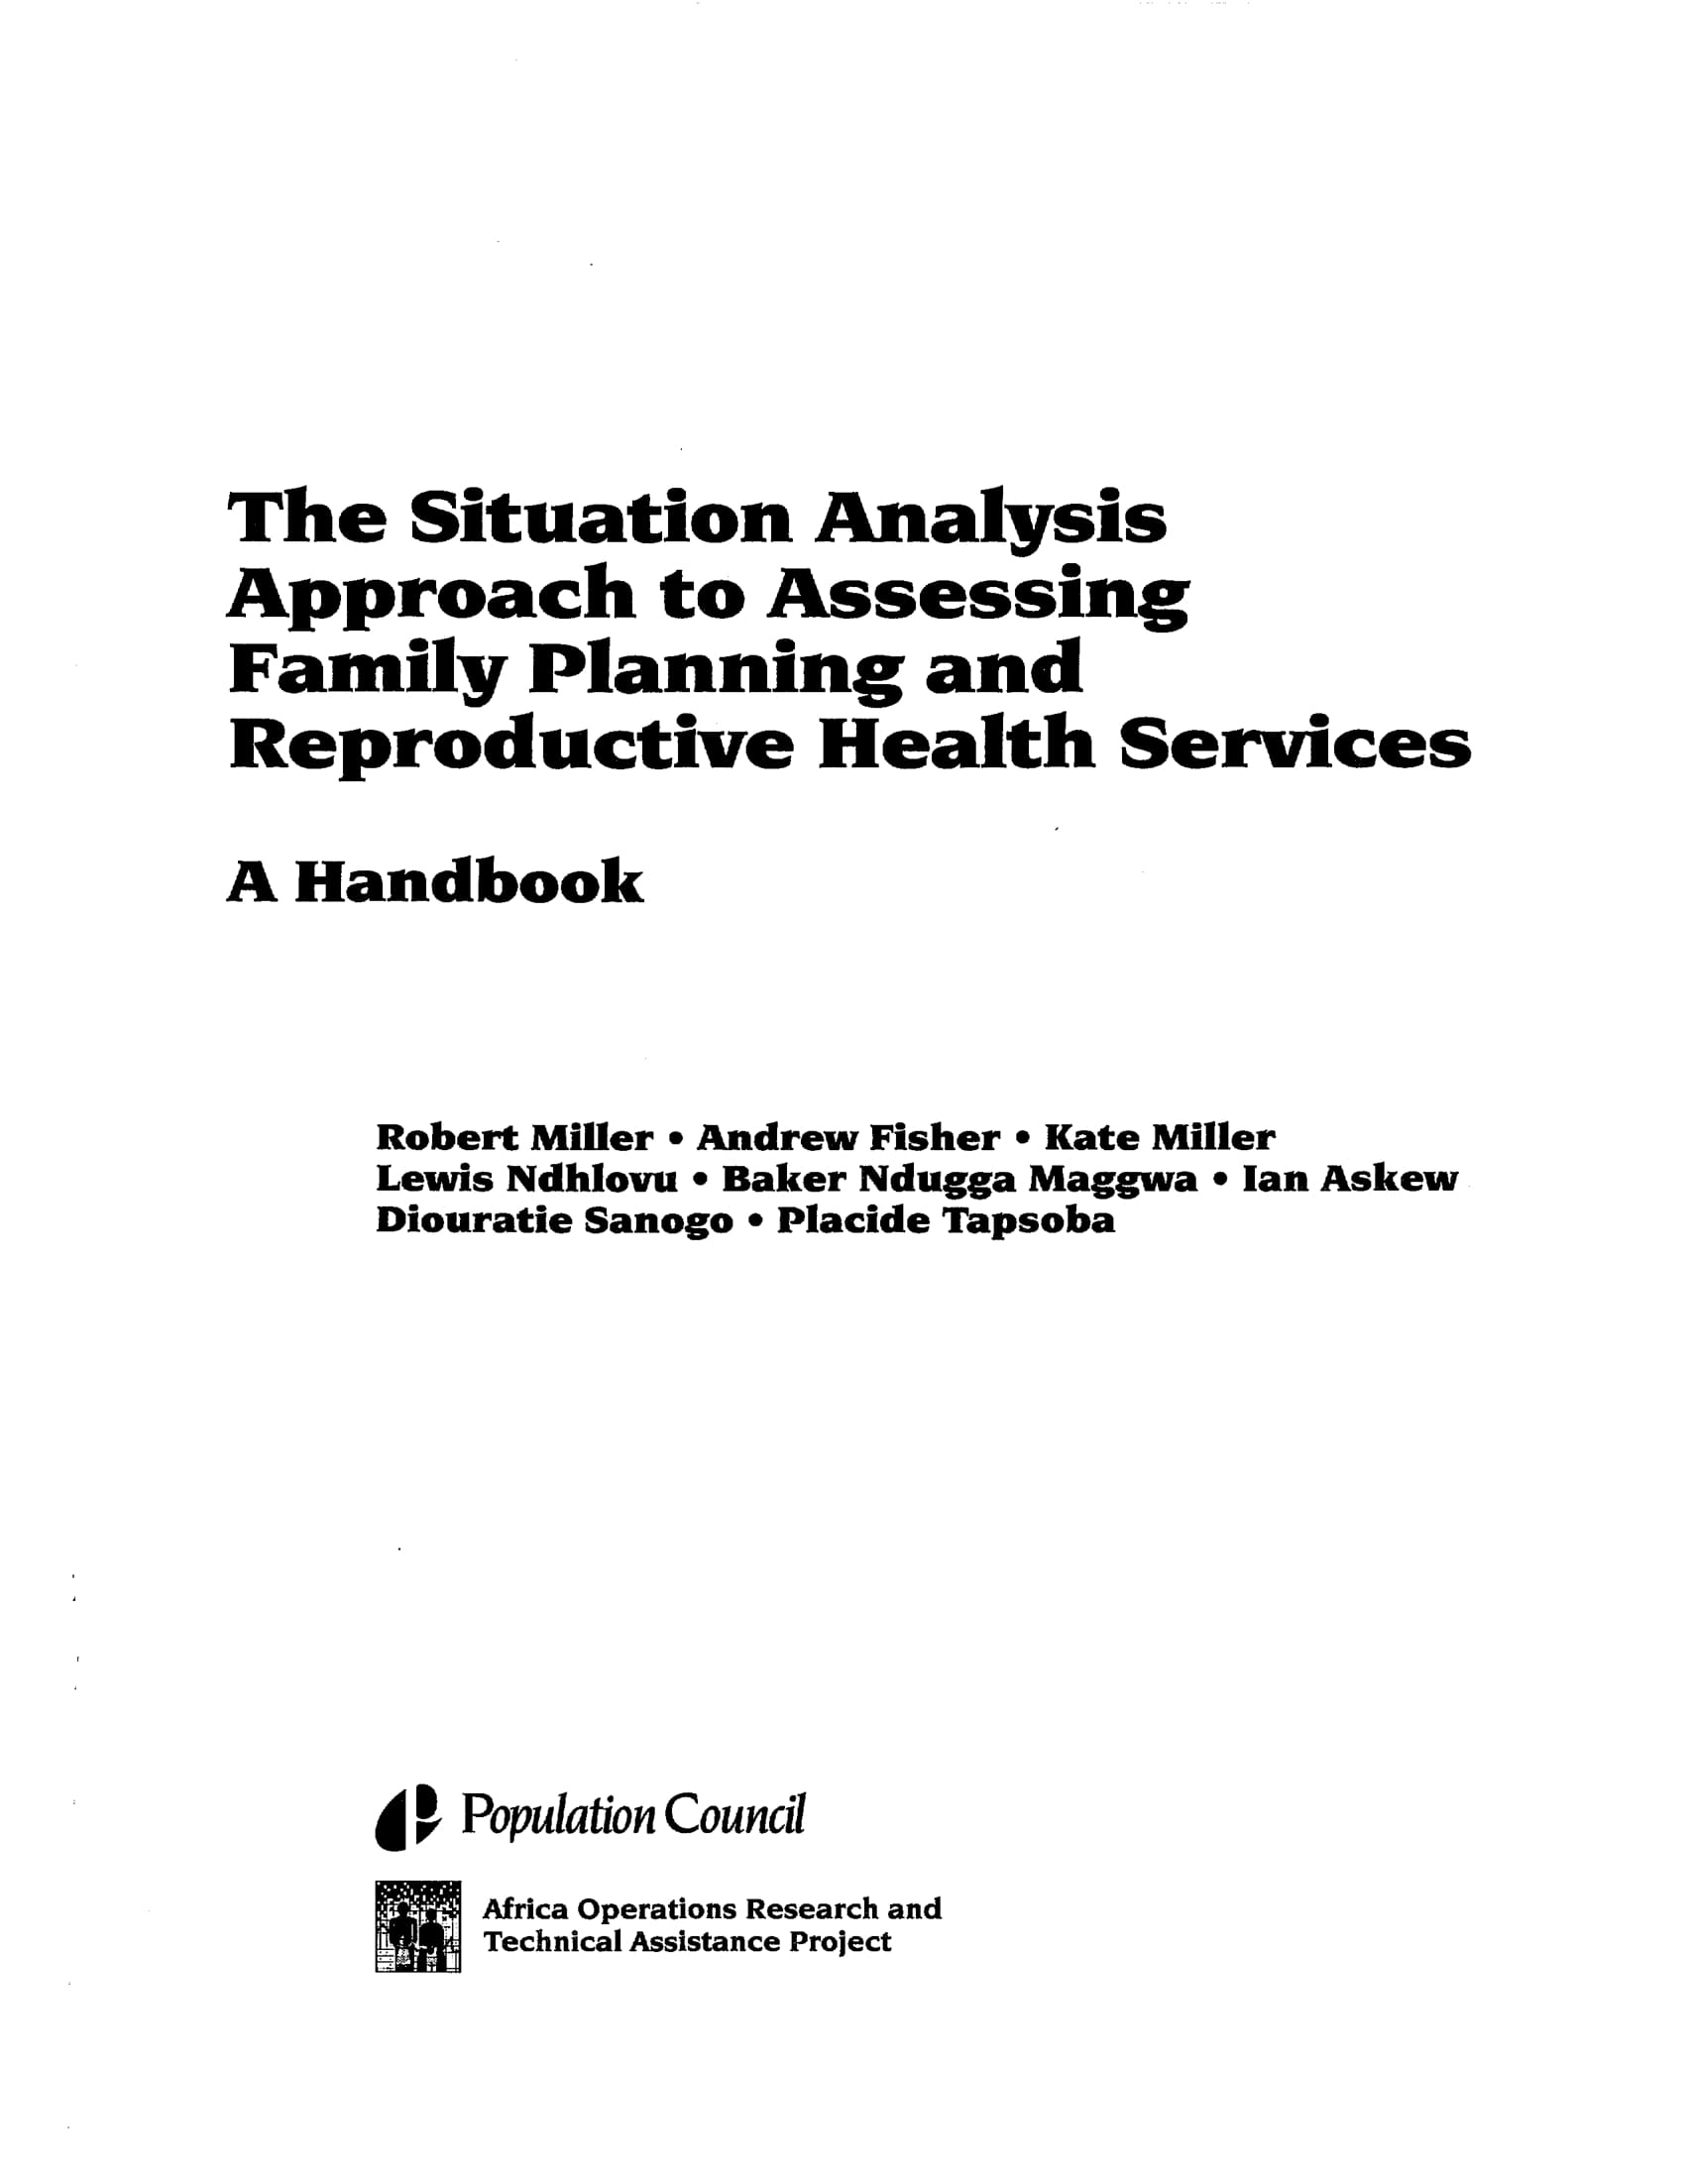 situation analysis approach to assessing family planning and reproductive health services example 001